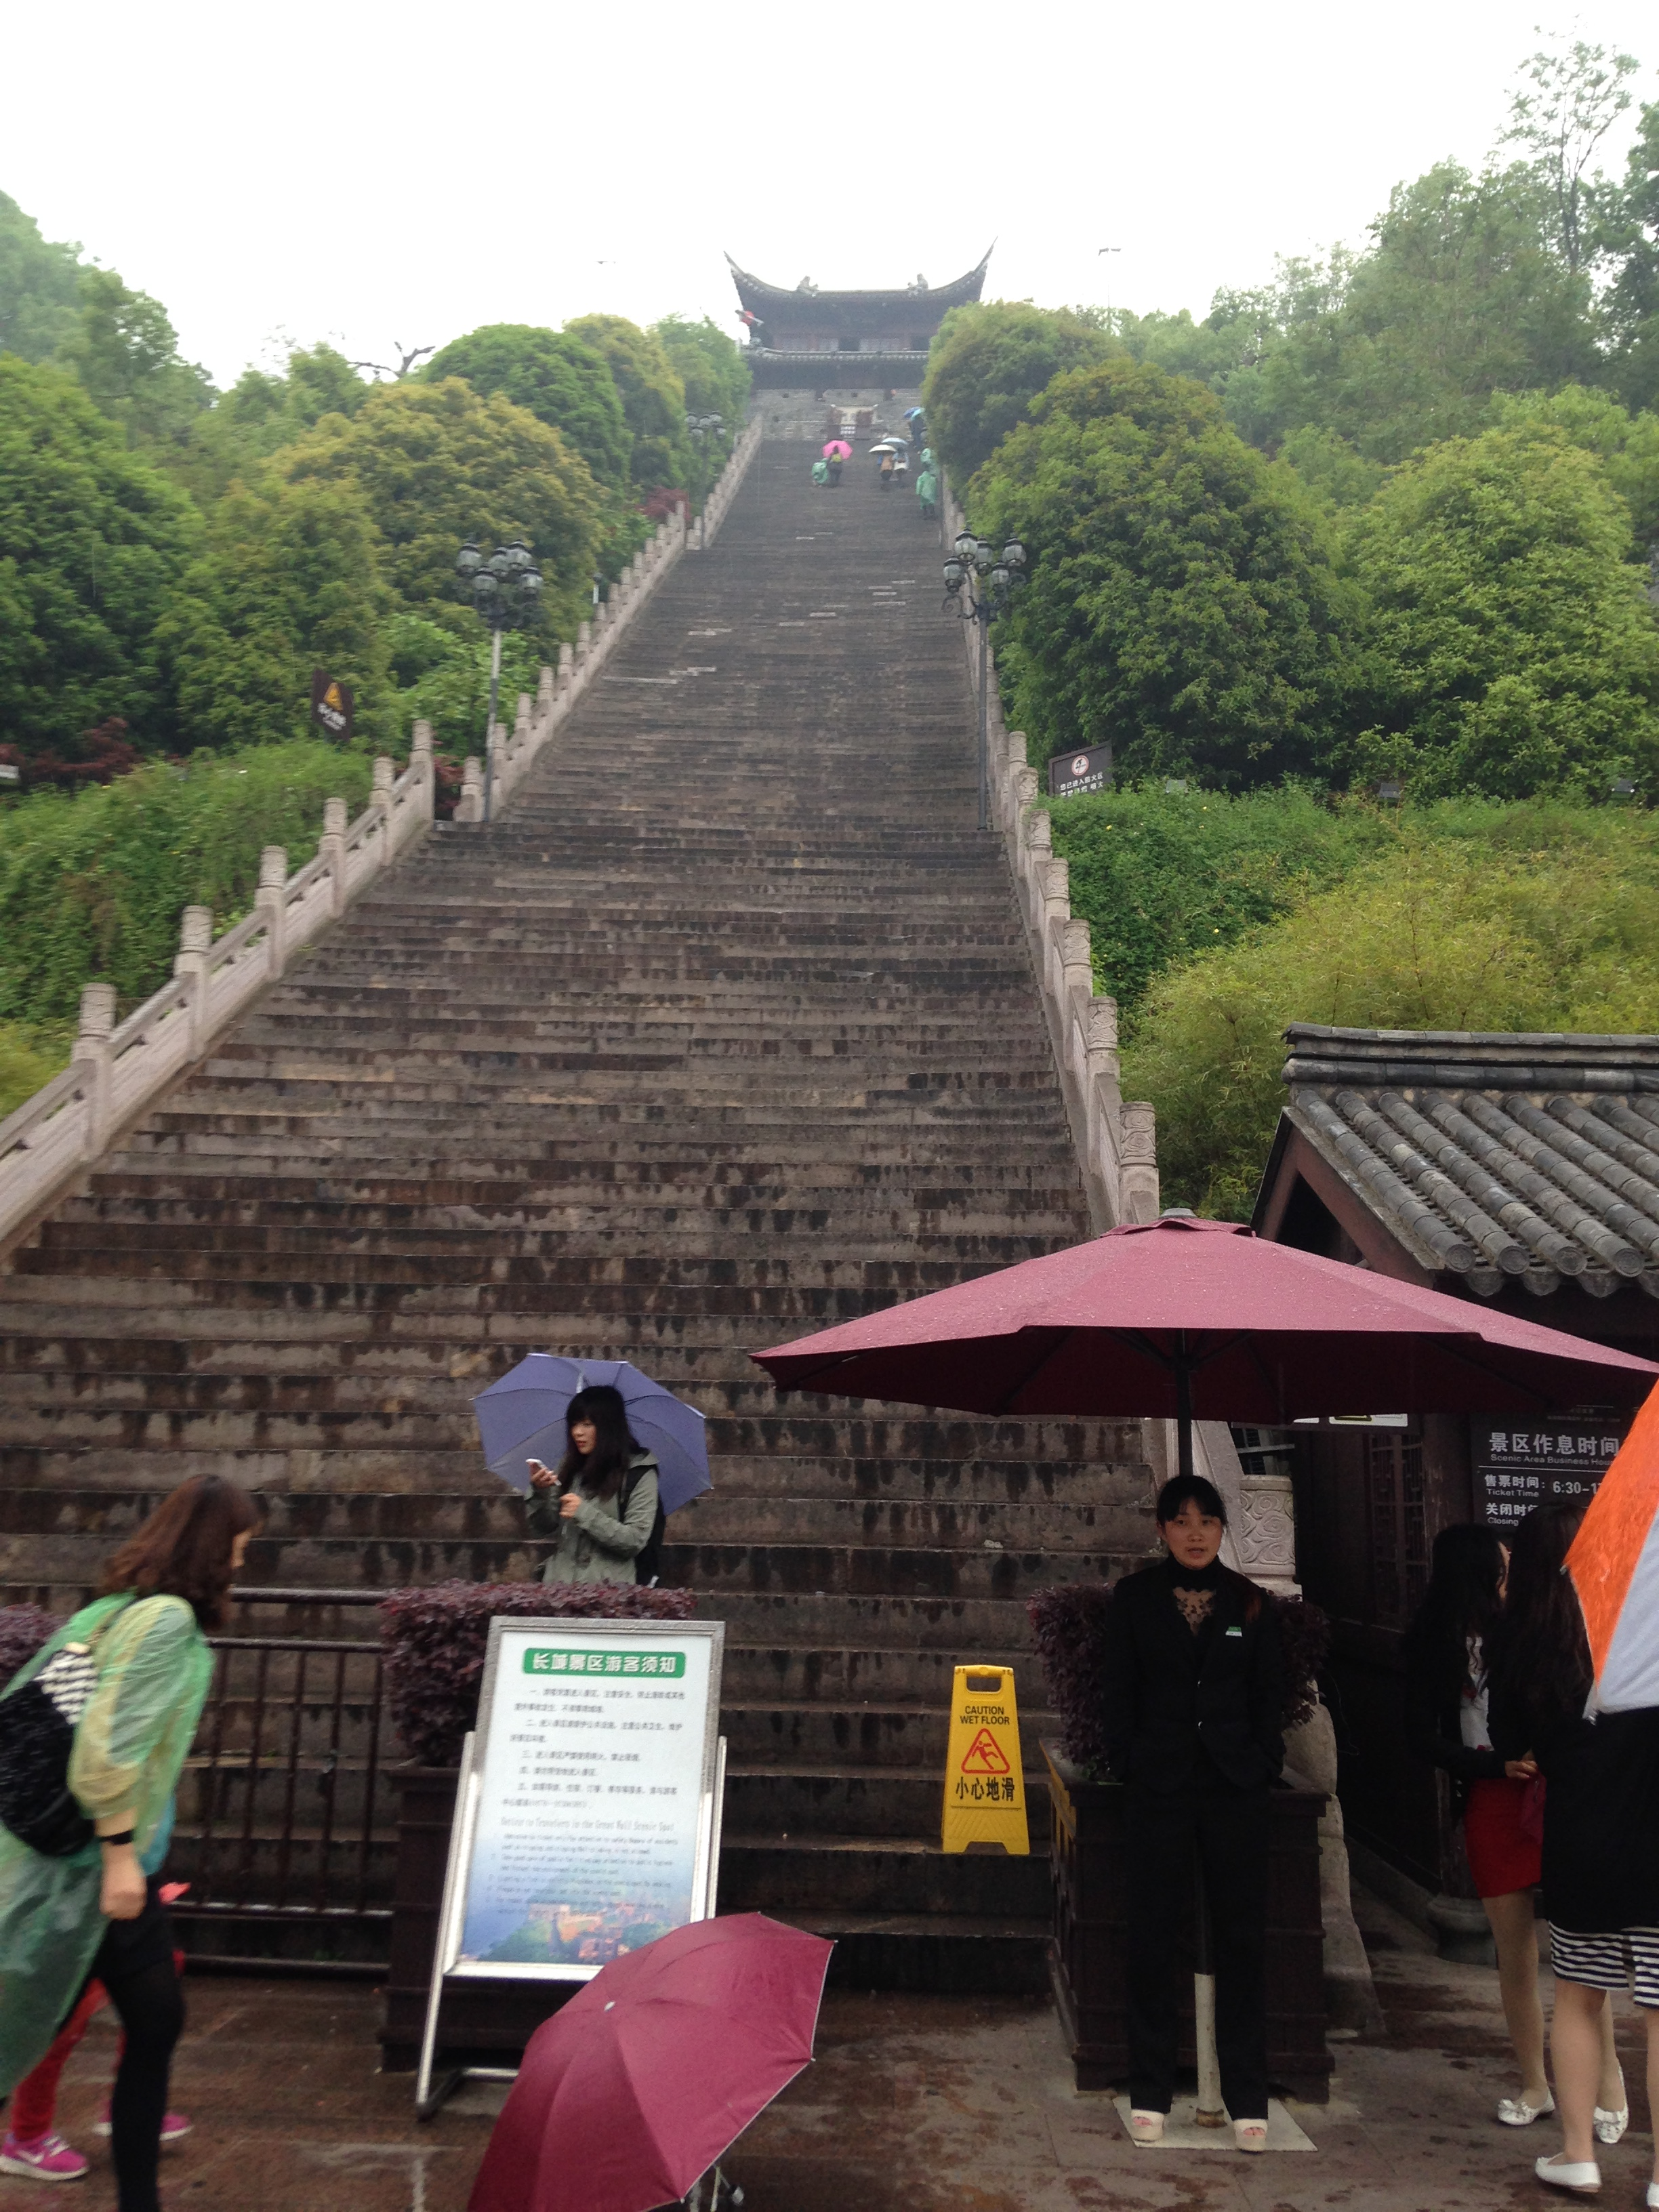 Looking up at the Southern Great Wall in Linhai.